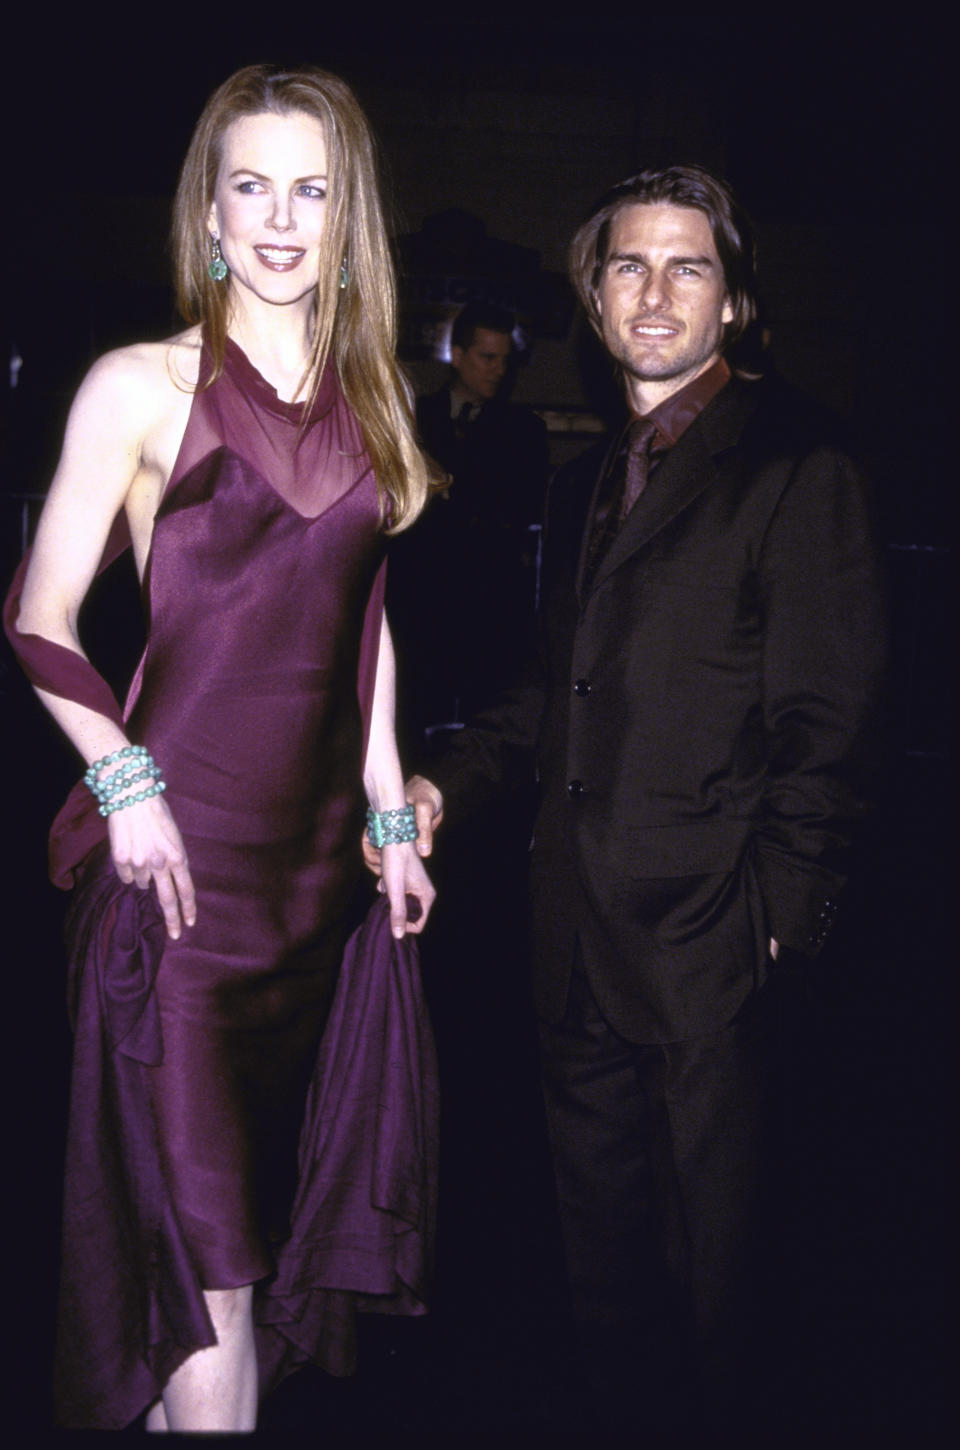 """<p>Cruise and Kidman reigned supreme over Hollywood for most of the '90s. With movie star good looks and blockbuster hits the pair ruled the red carpet and starred in multiple films together, including """"Days of Thunder"""" and """"Eyes Wide Shut."""" Cruise filed for divorce in 2001 after 11 years of marriage. <em>(Image via Getty Images)</em></p>"""